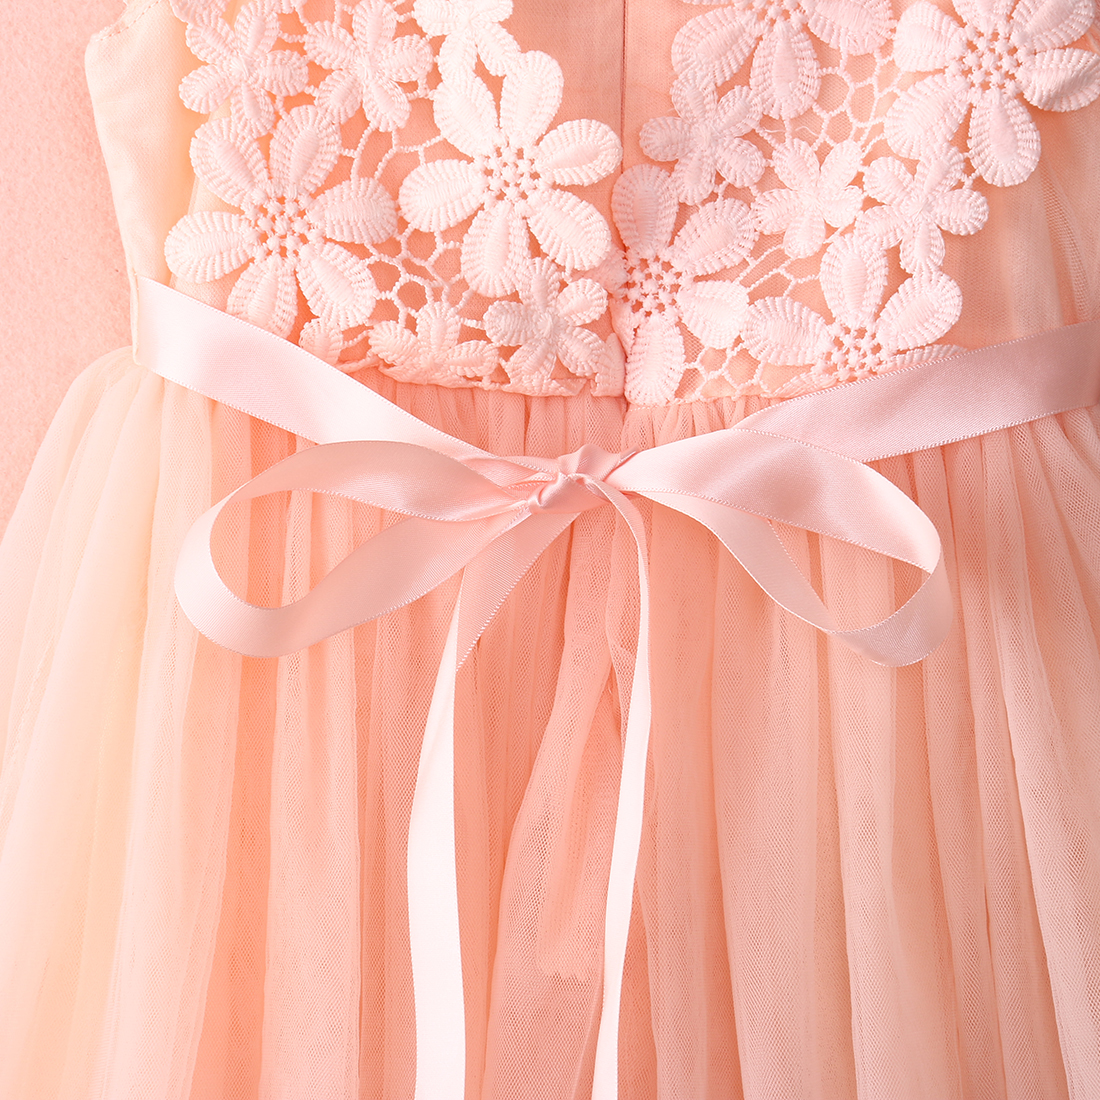 e5126ac4937 High Quality 2017 XMAS Baby Girl Princess Party Pearl Lace Tulle Flower  Gown Fancy Dress Sundress 2 7 Years-in Dresses from Mother   Kids on  Aliexpress.com ...